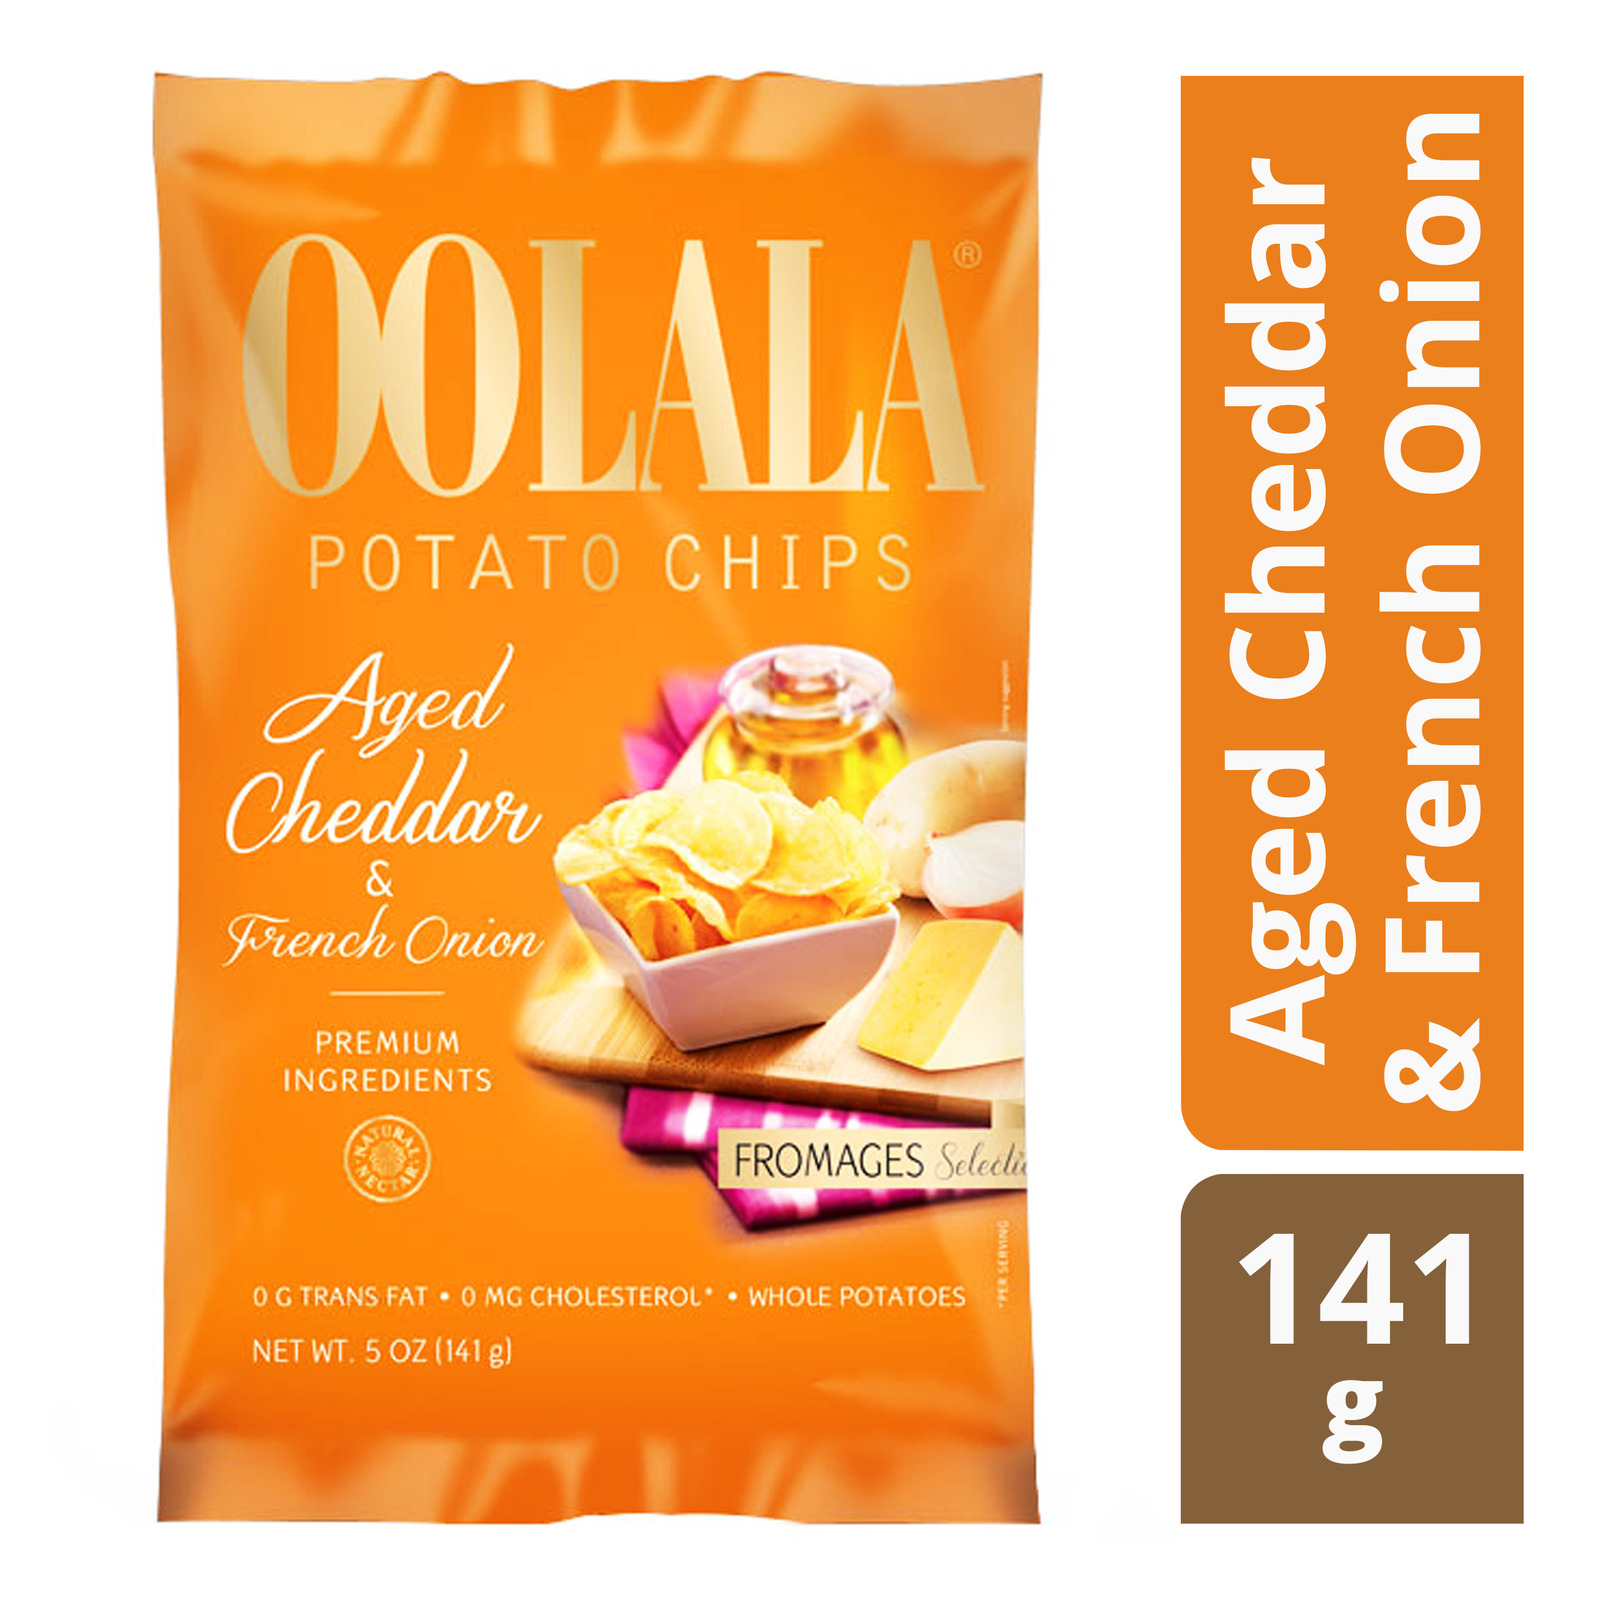 Oolala Potato Chips - Aged Cheddar & French Onion